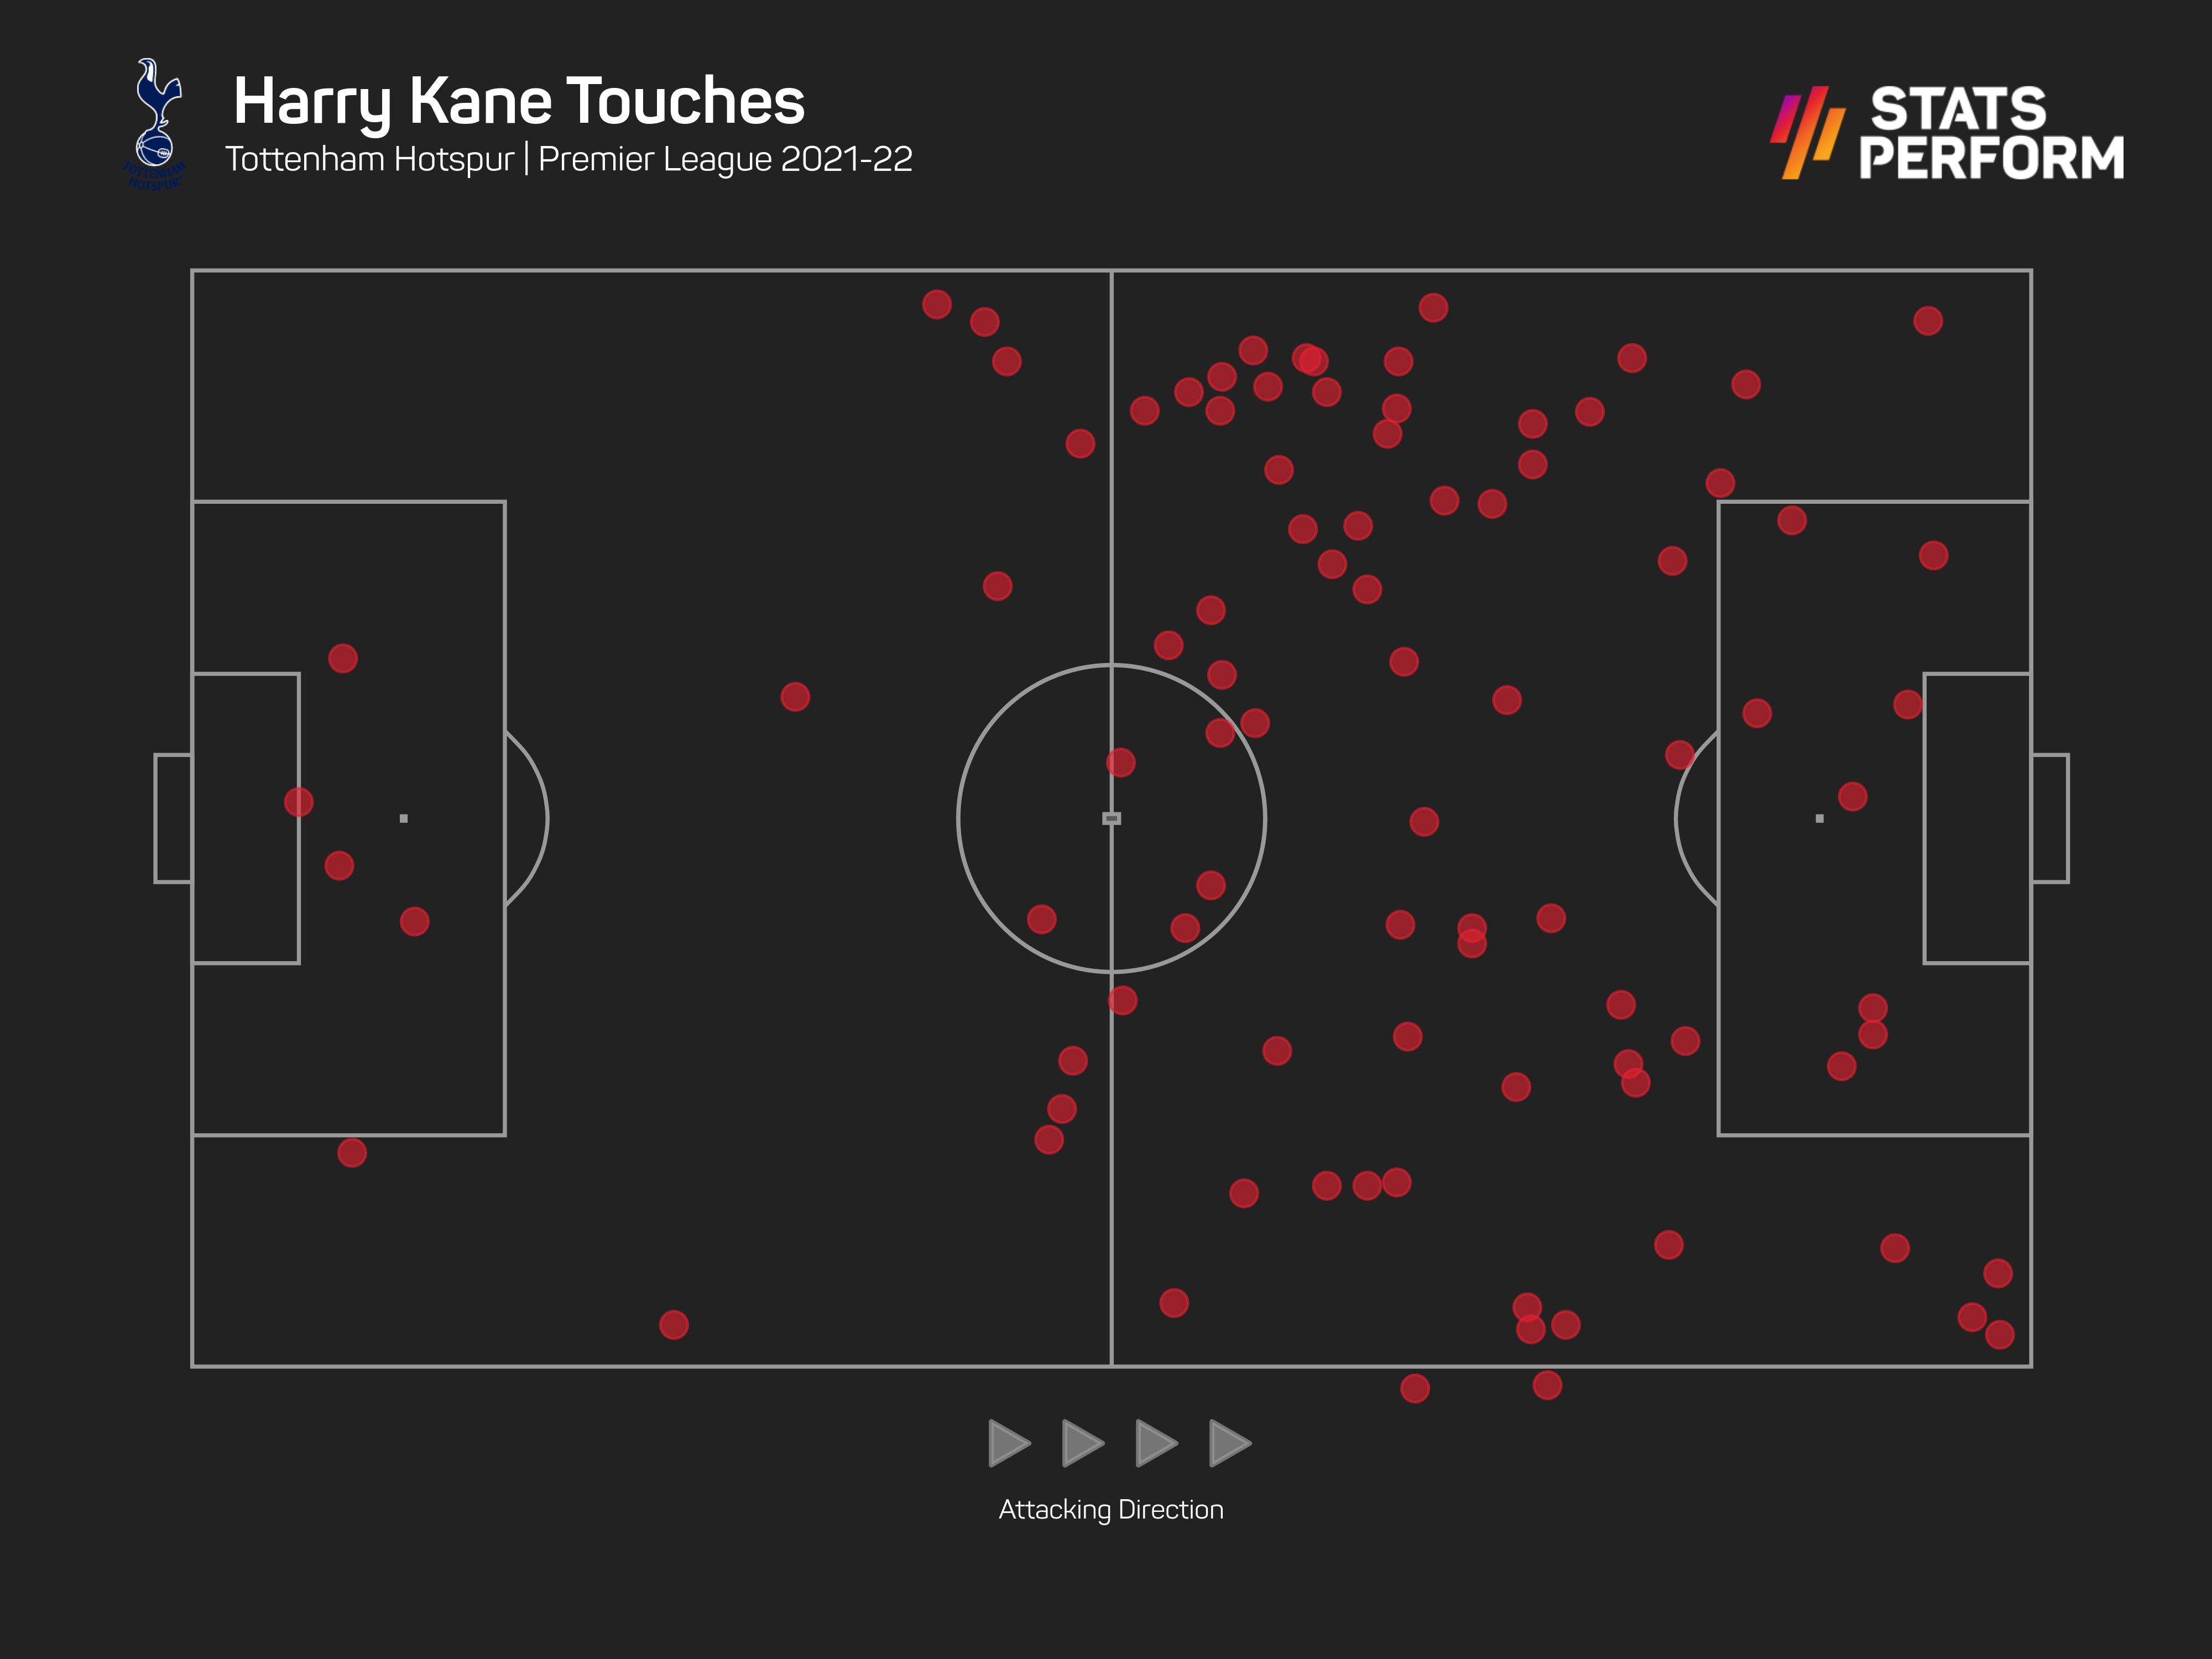 Harry Kane has made just eight touches in the opposition box